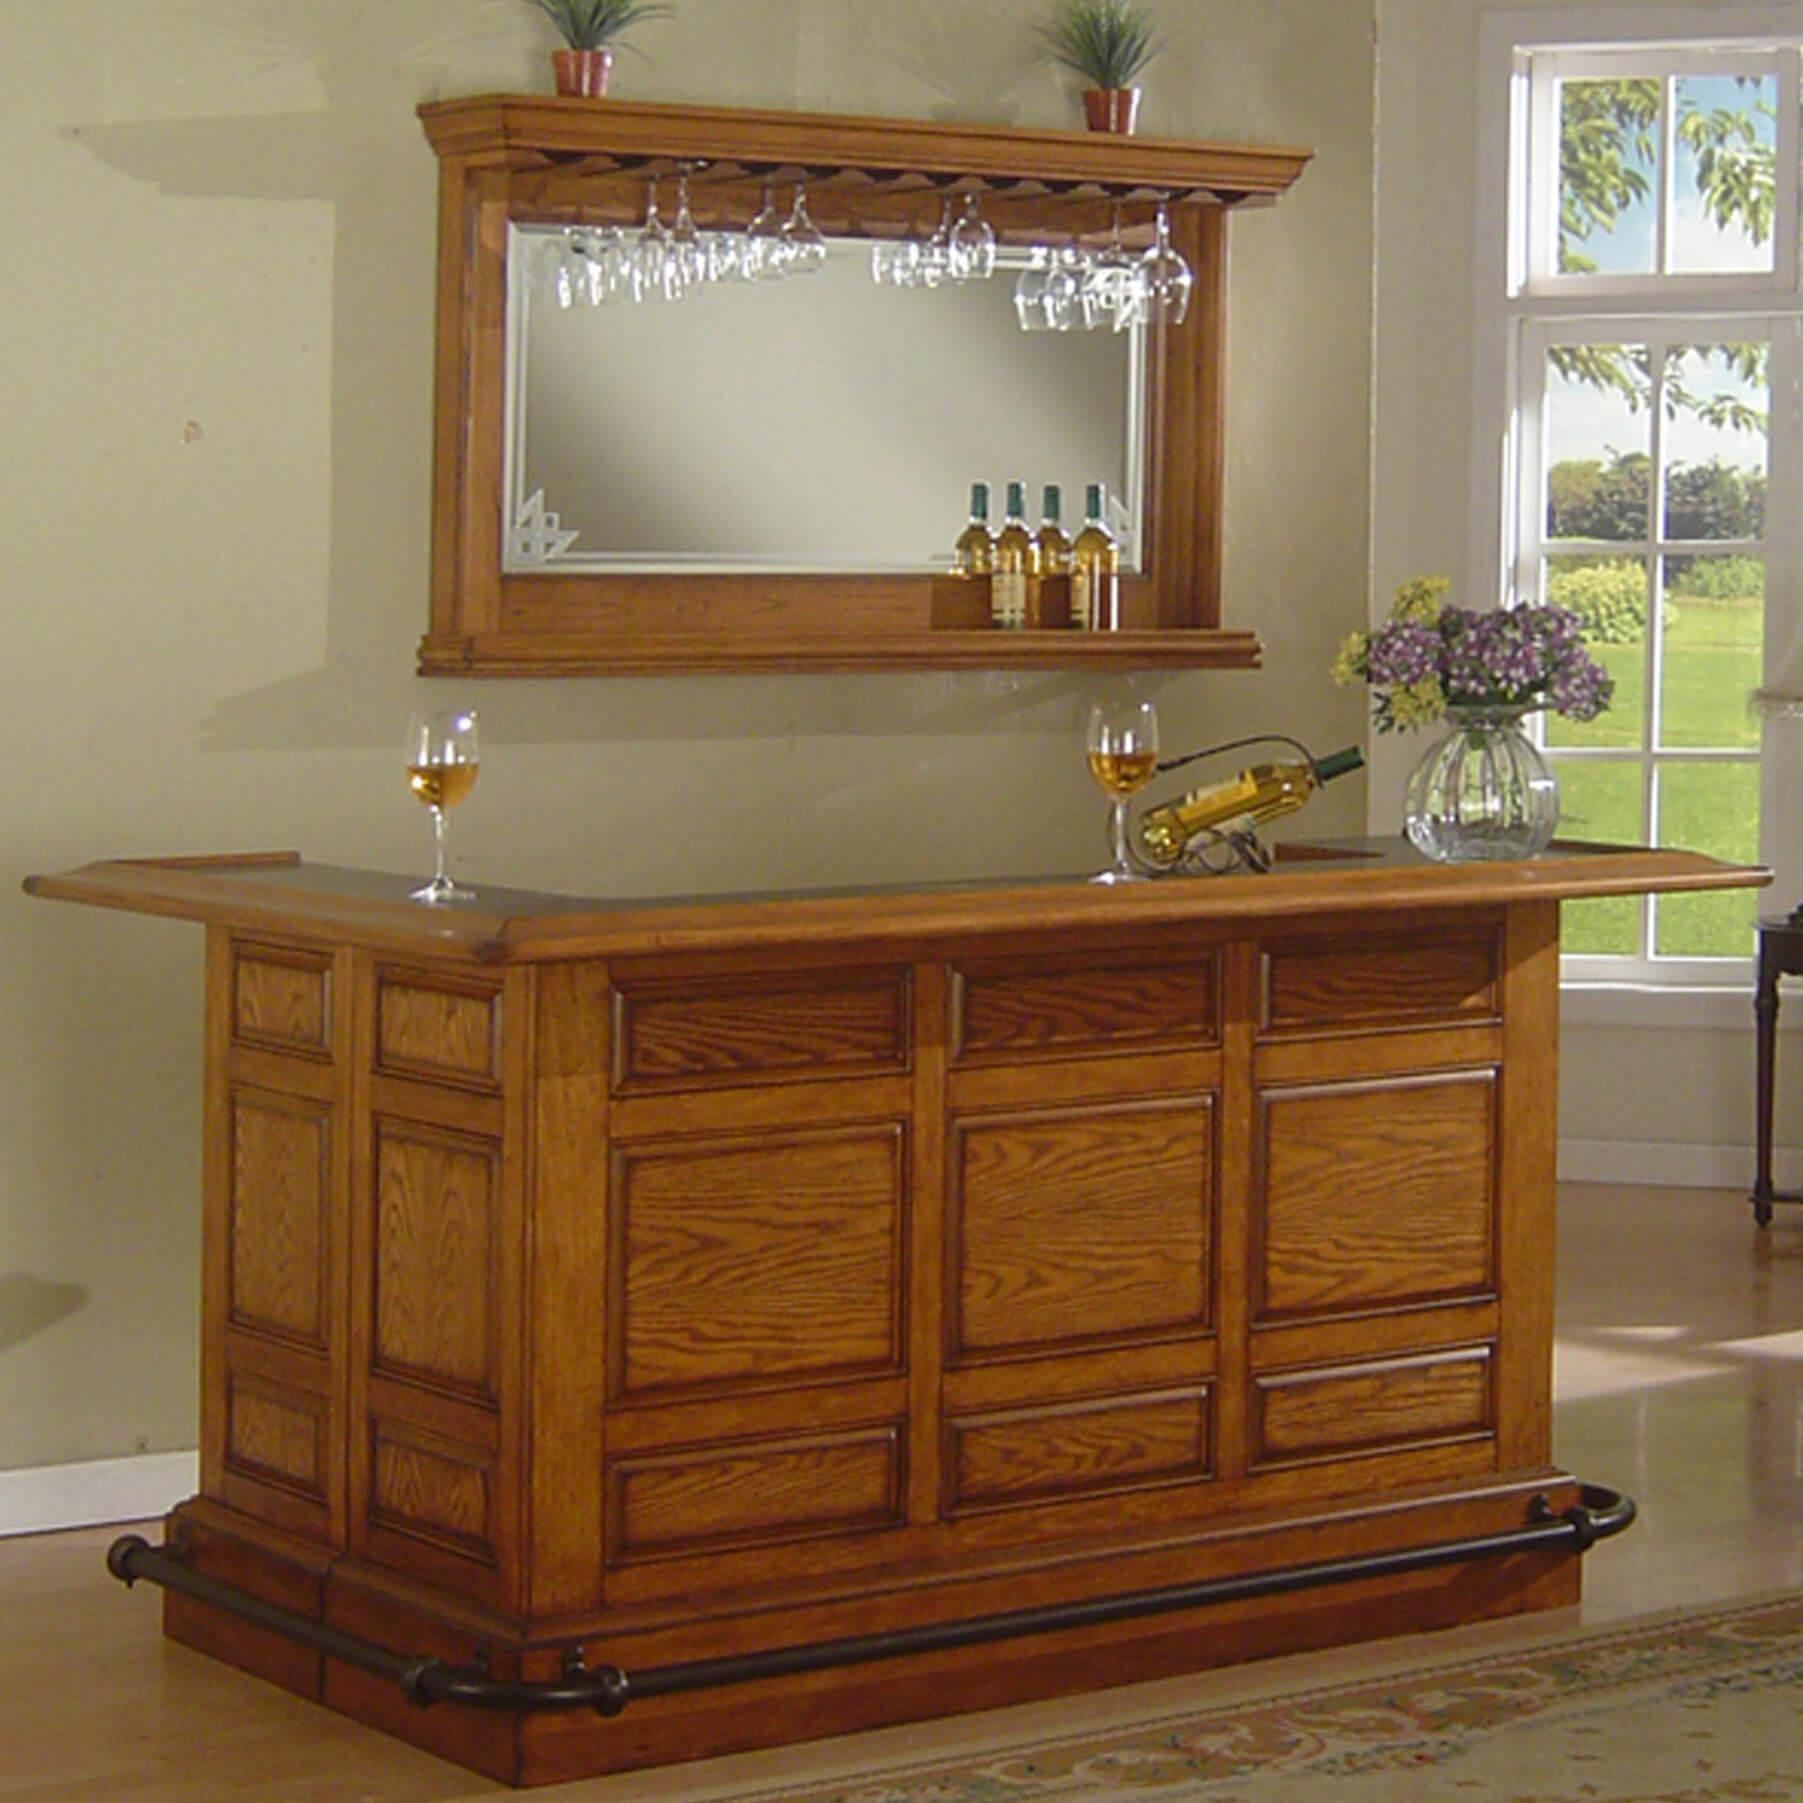 Superieur Solid Wood Home Bar With Wrap Around Counter.